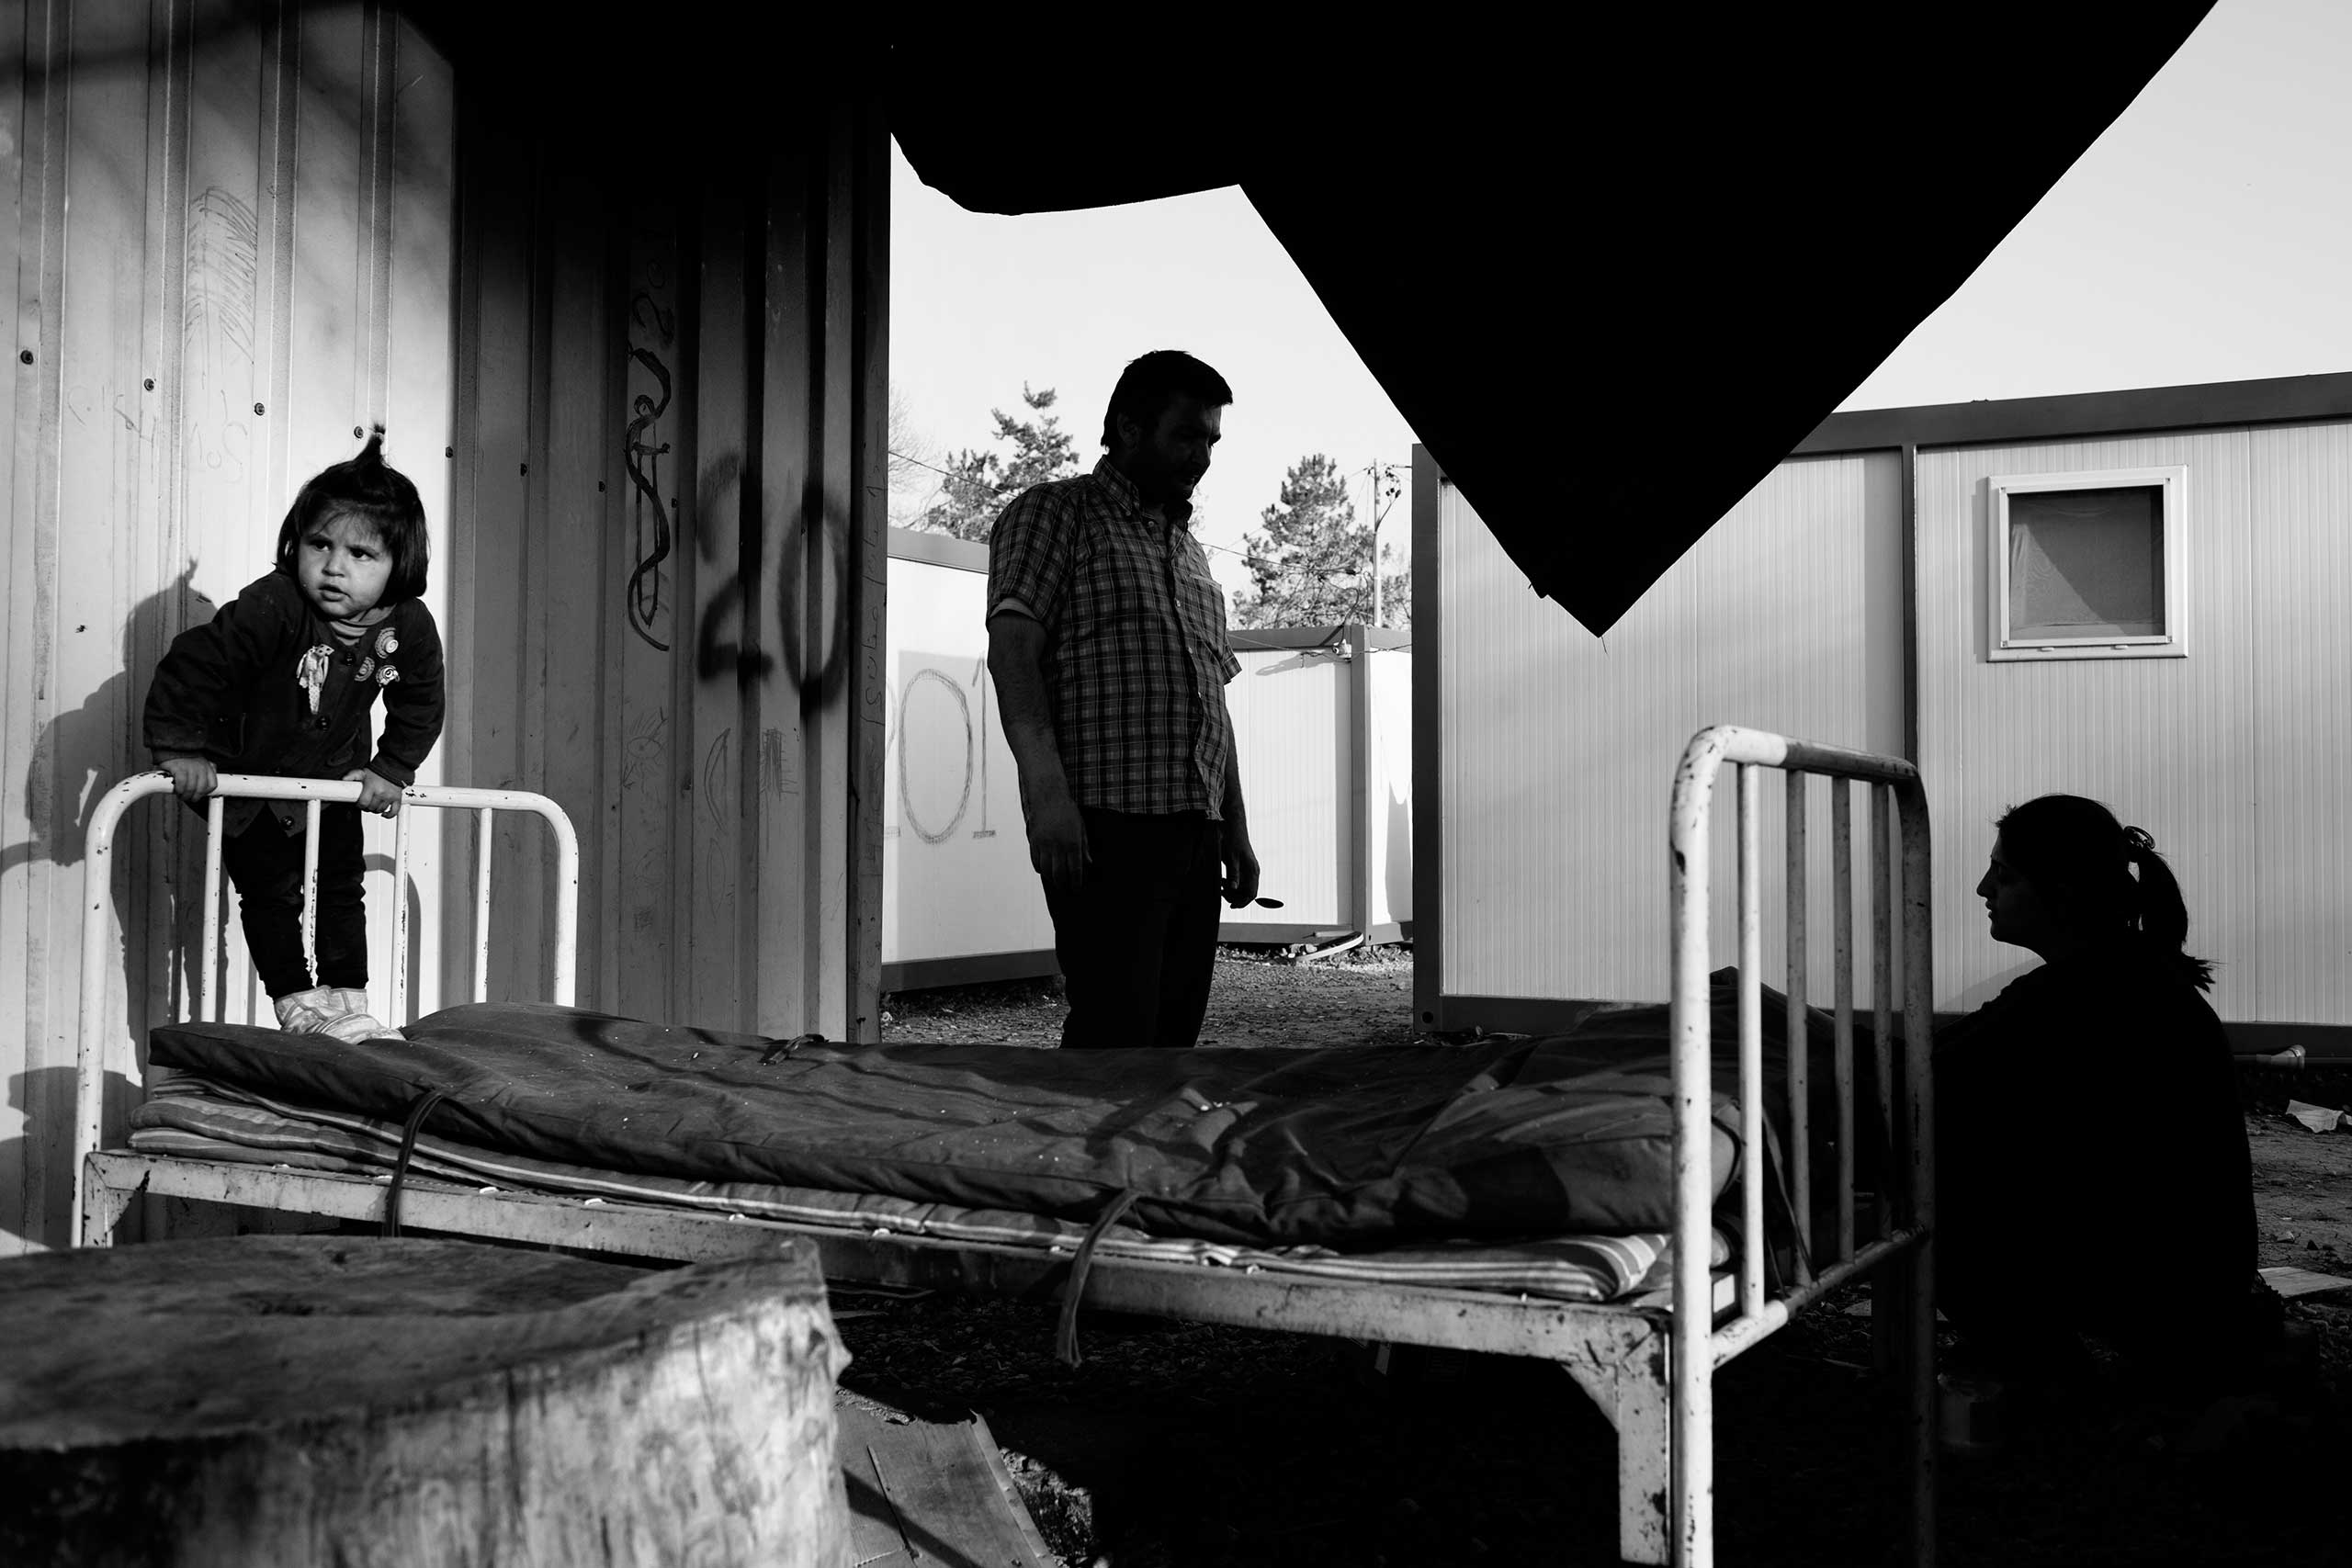 MSNBC: A look at one young Syrian refugee's journey through EuropeA Syrian family outside one of the containers in a former Bulgarian military base that was turned into a refugee camp in Harmanli, Bulgaria, 2014.